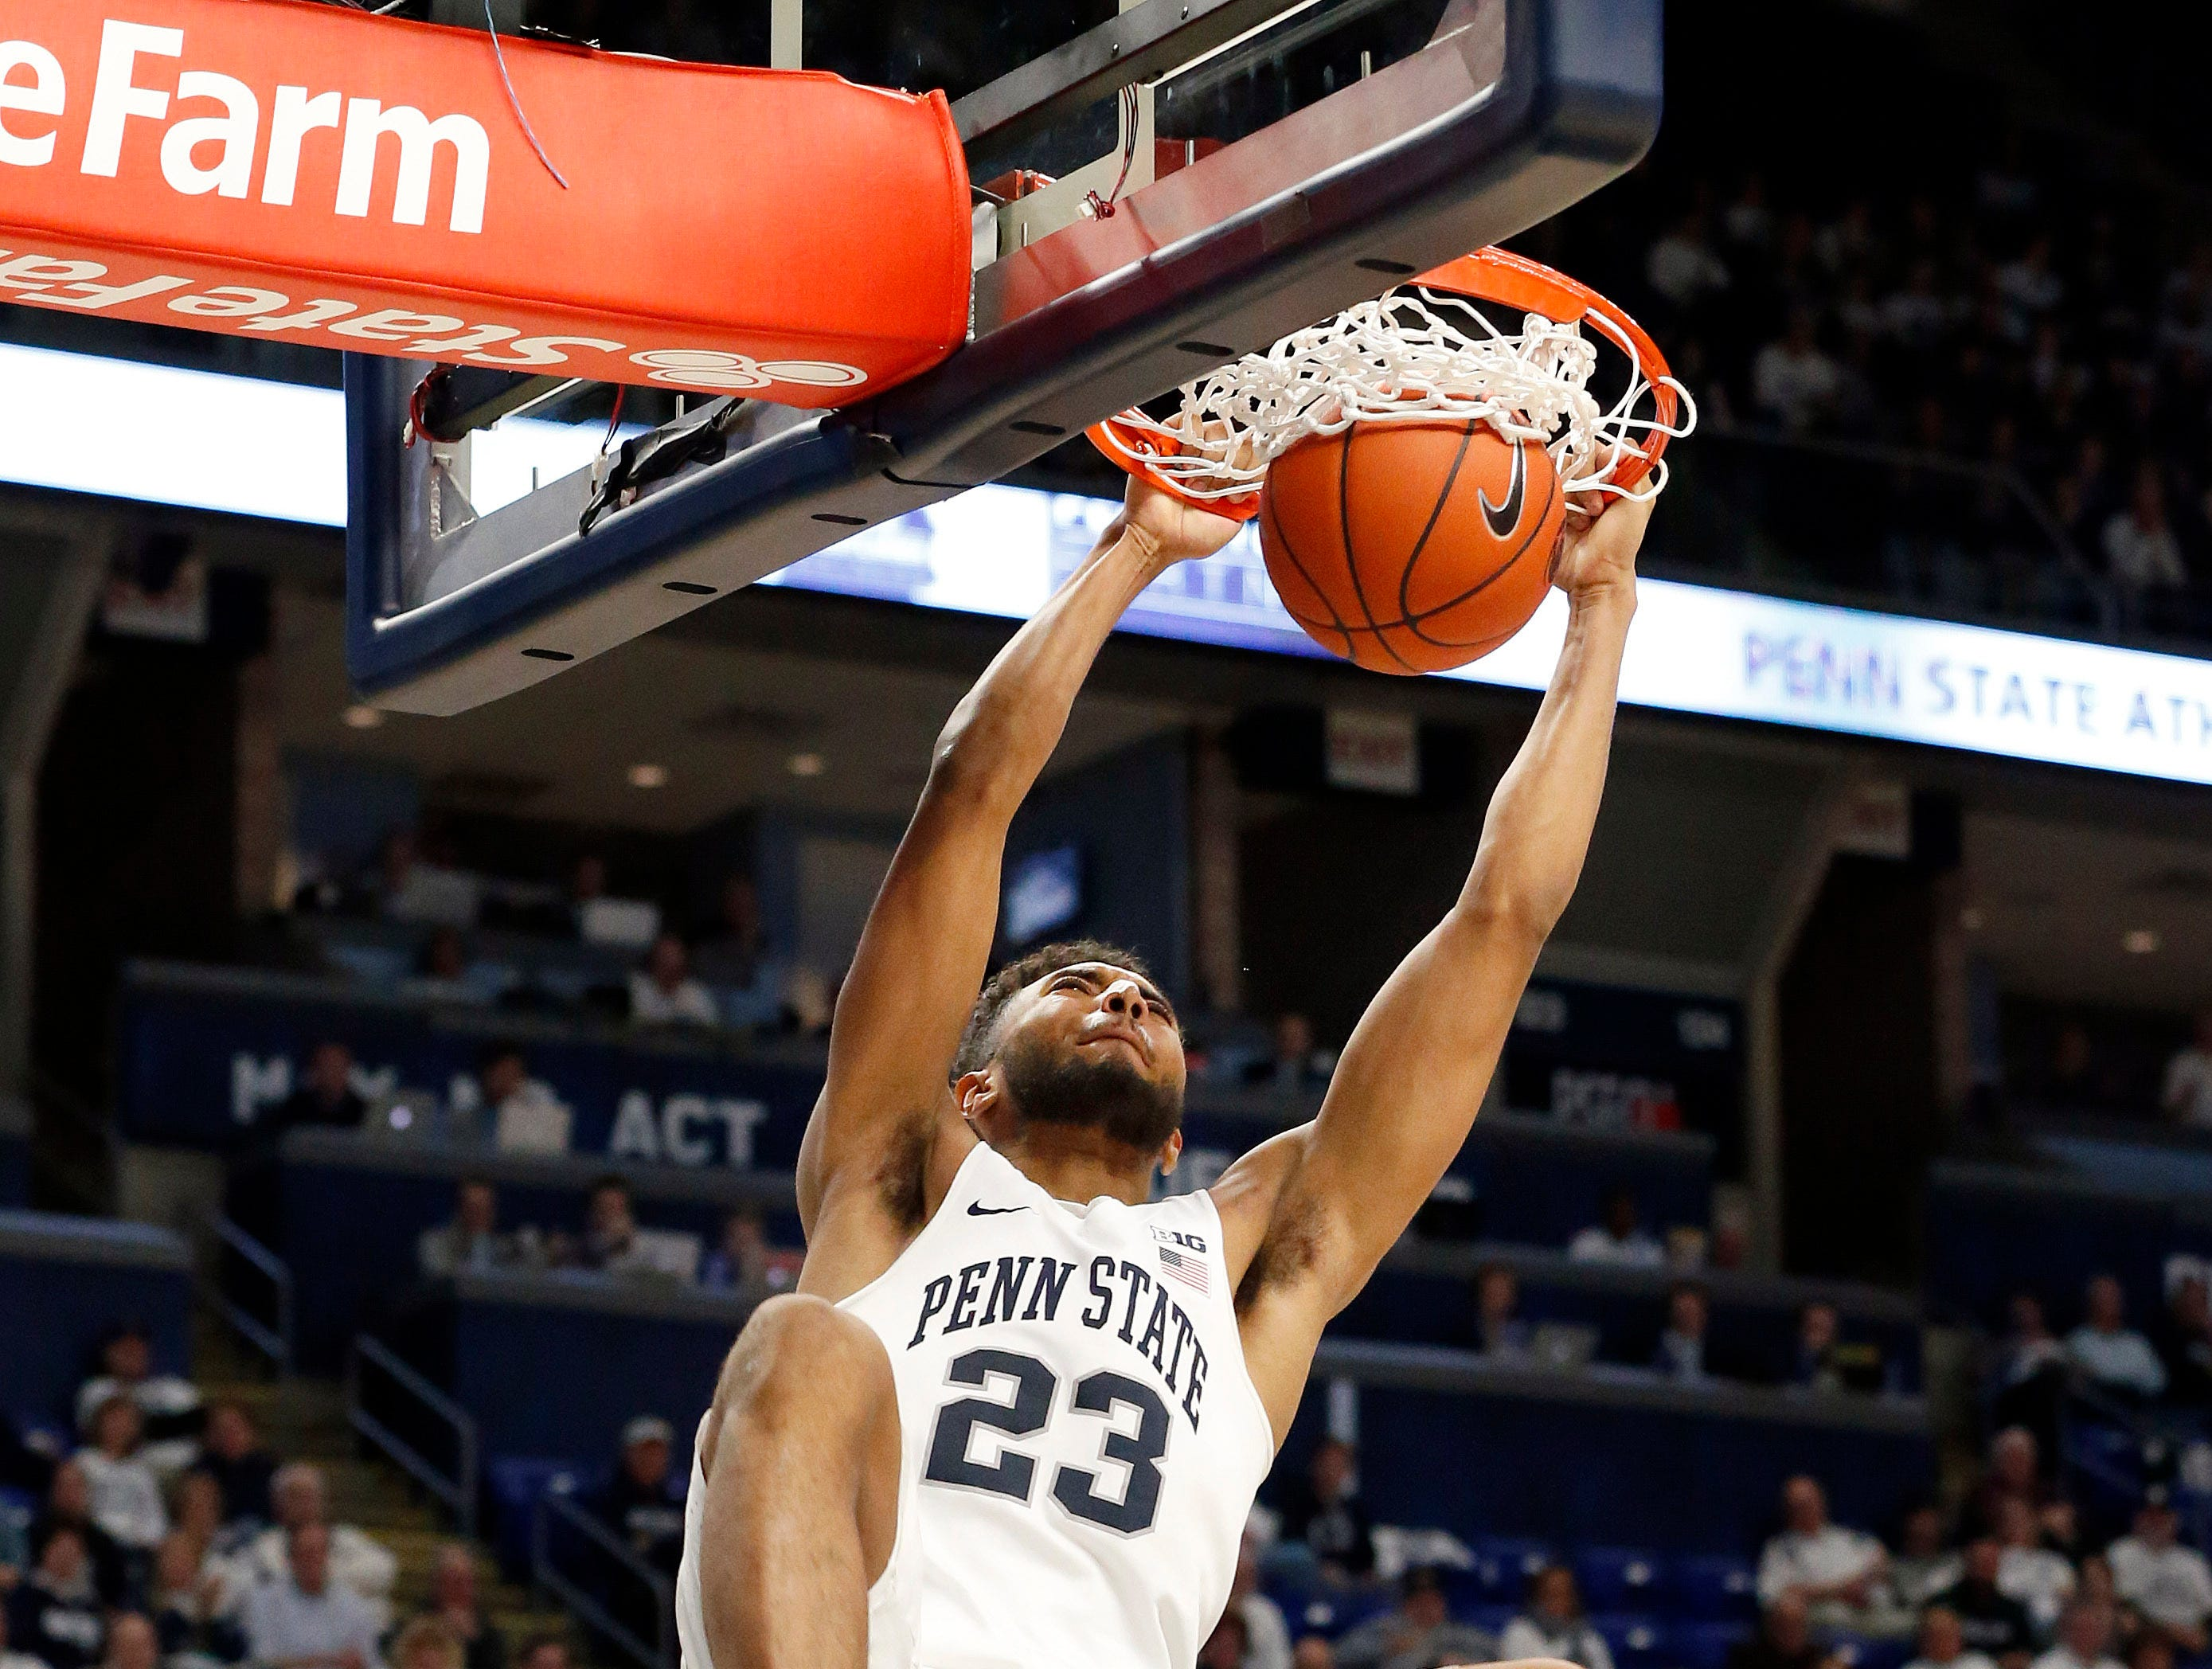 Penn State's Josh Reaves (23) dunks against Michigan State during second-half action of an NCAA college basketball game in State College, Pa. Sunday, Jan. 13, 2019. (AP Photo/Chris Knight)